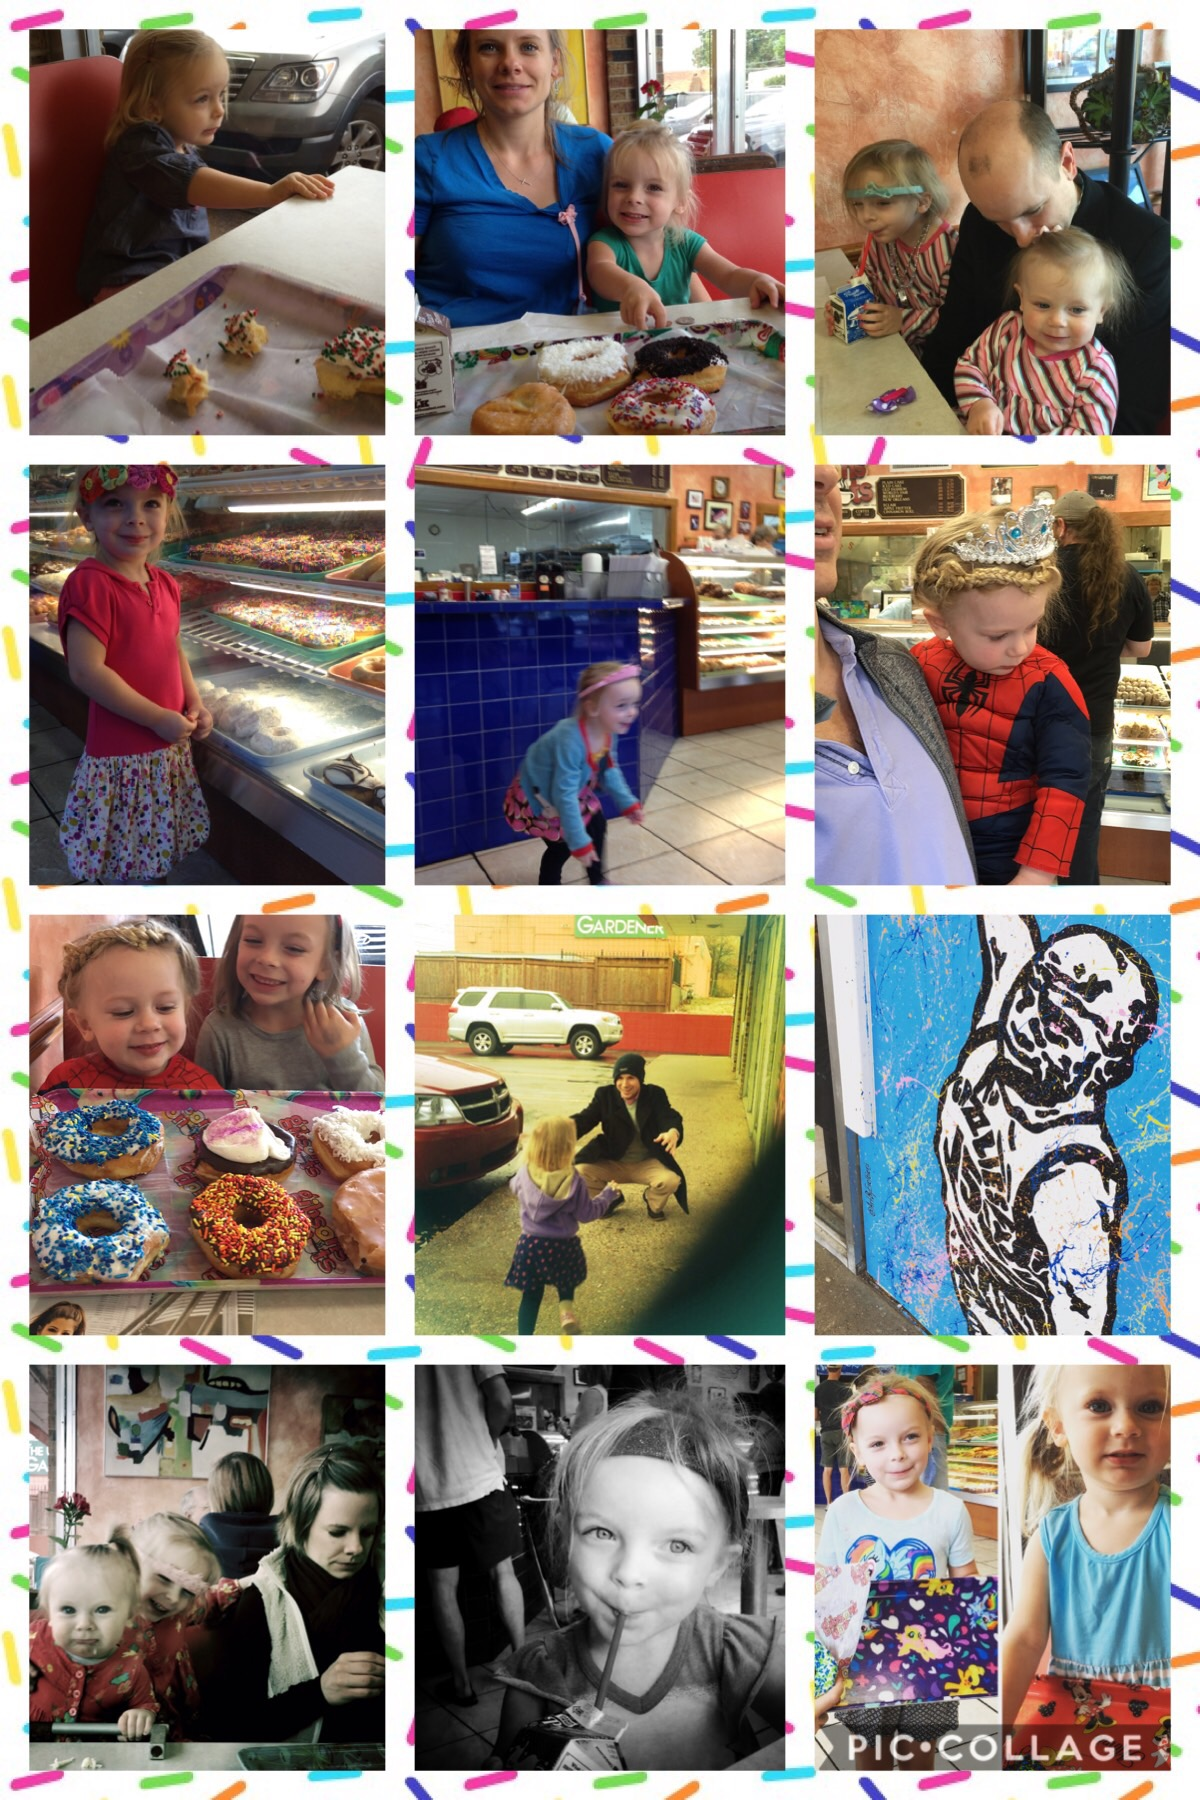 Gibson's Donuts - EastMemphisMoms.com